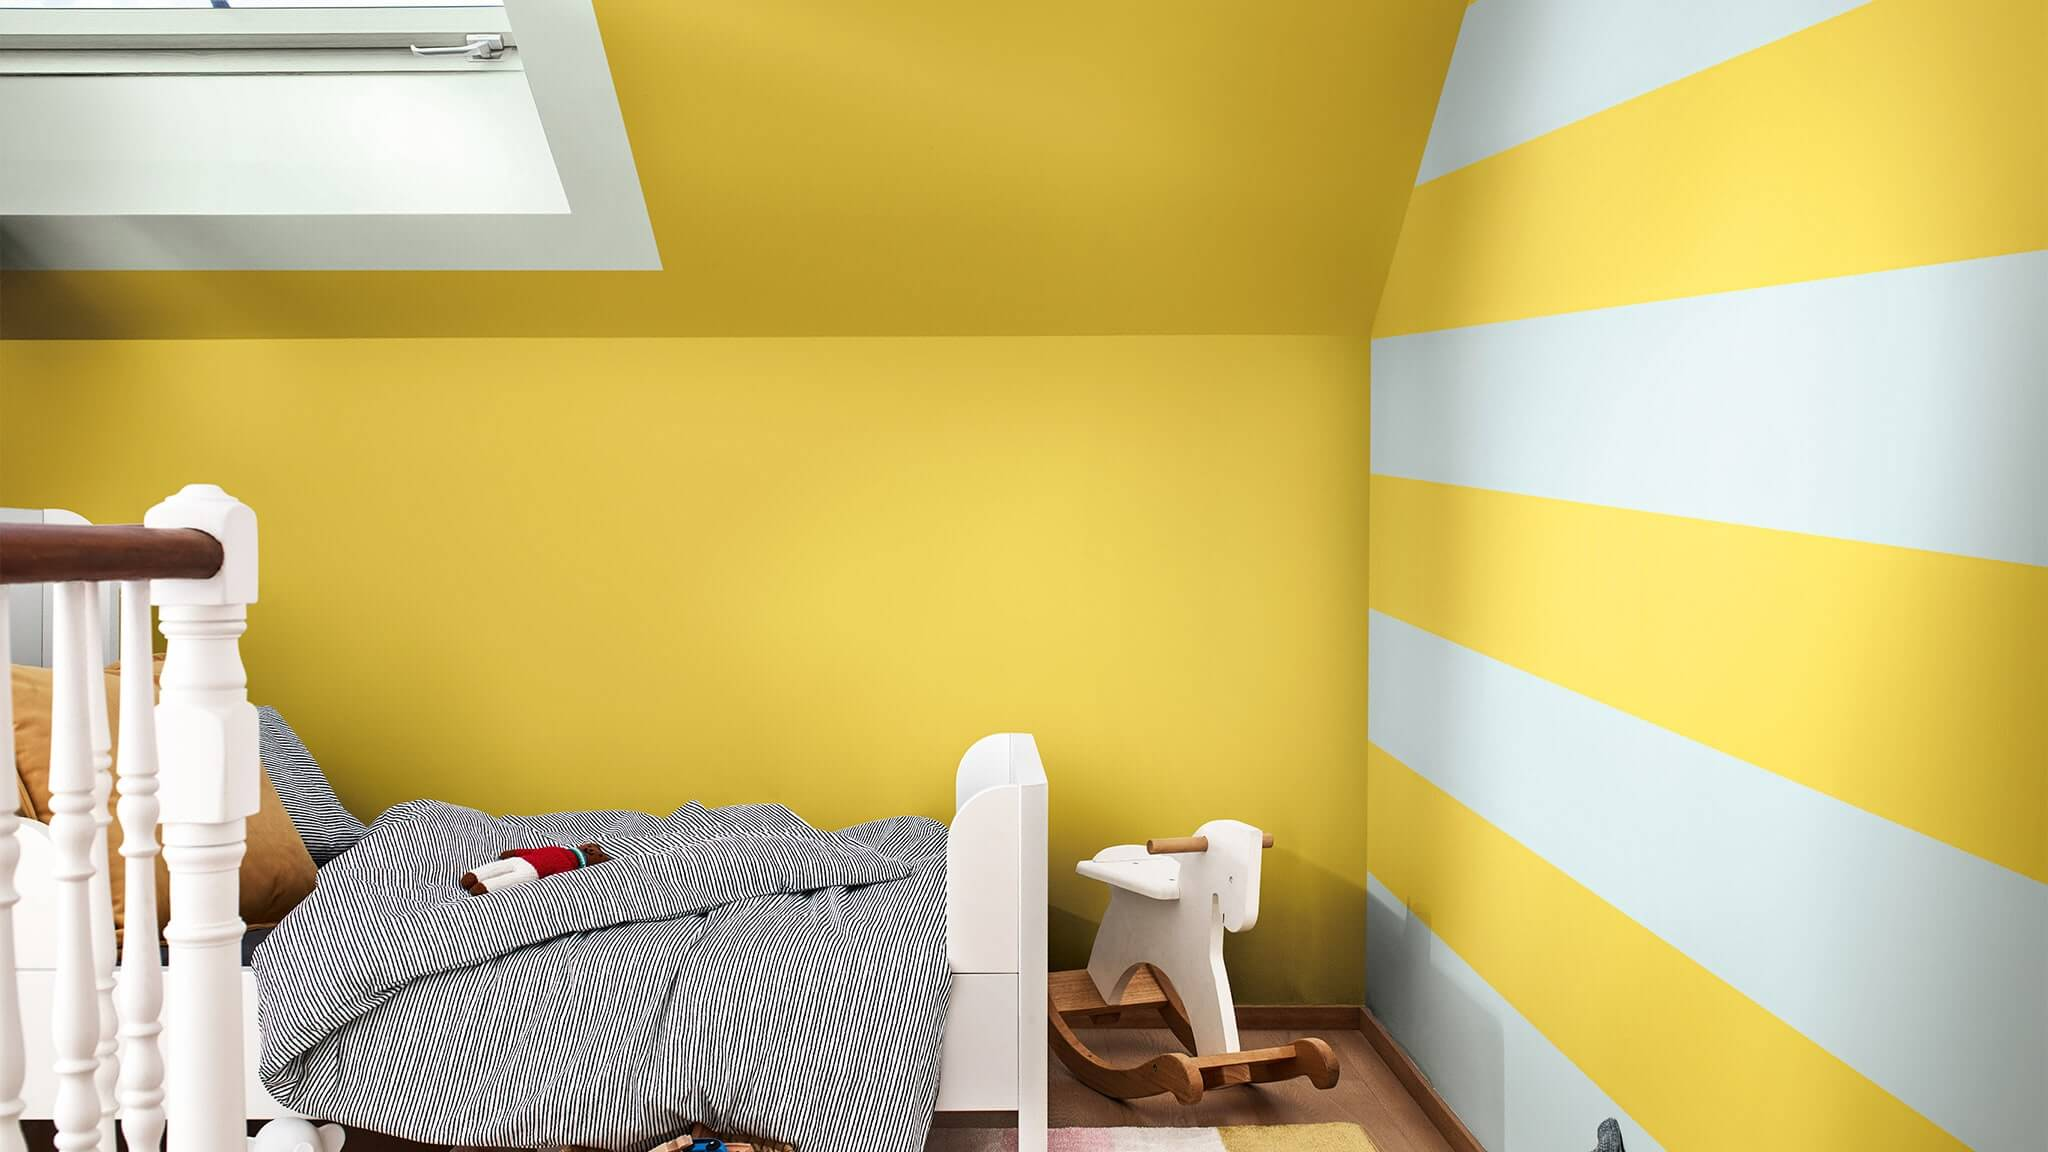 dulux-colour-futures-colour-of-the-year-2020-a-home-for-play-kidsroom-inspiration-thailand-42.jpg